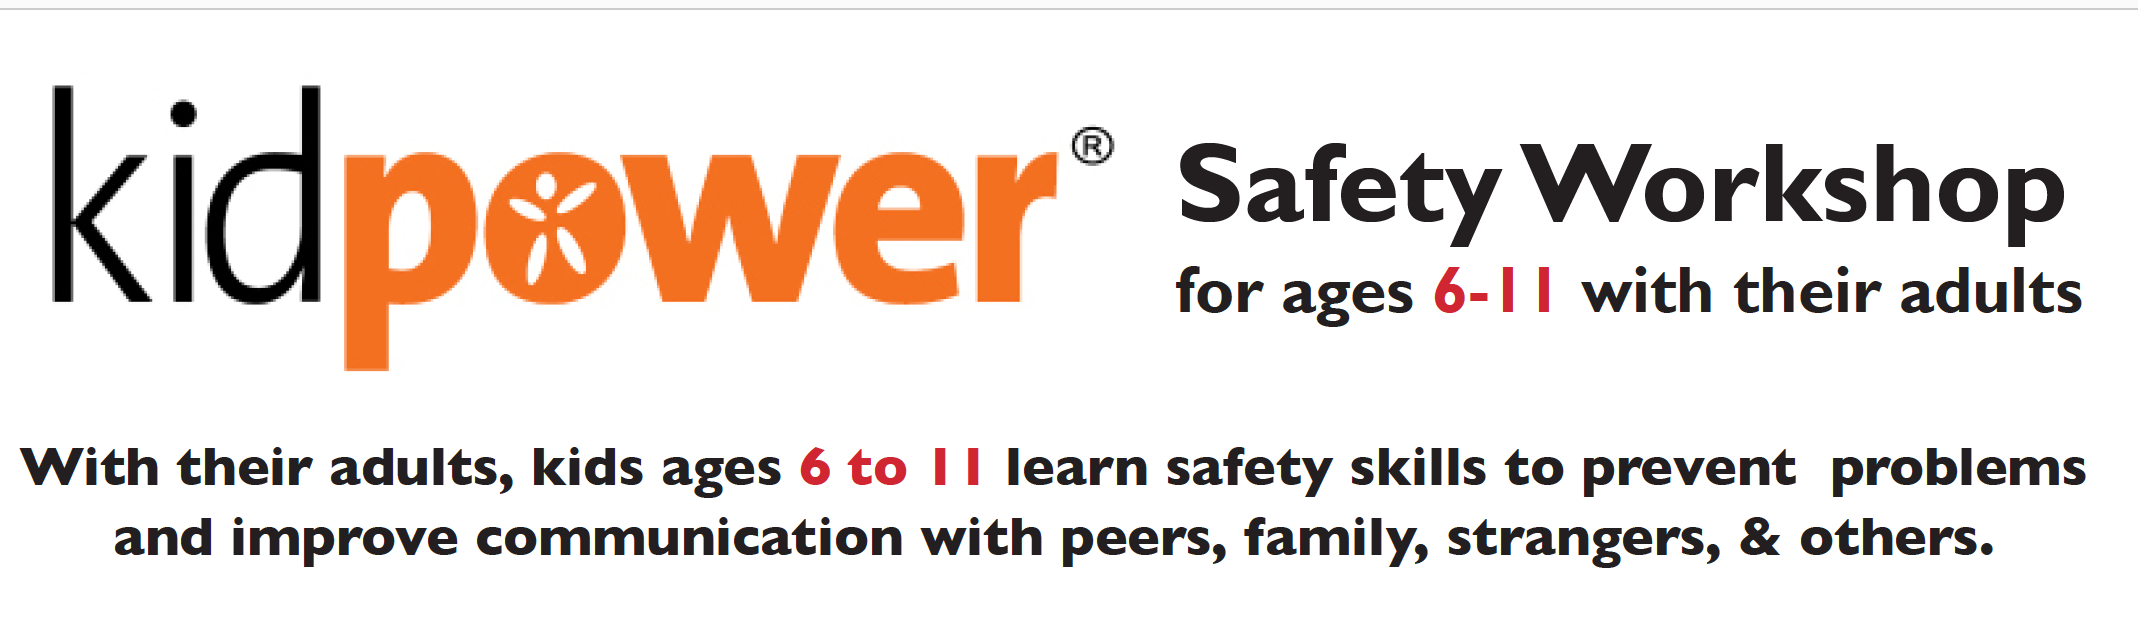 Kidpower skills prepare adults and kids alike to develop healthy relationships and make safe choices with people including strangers, siblings, peers, and other people they know. Together, you'll practice using 'People Safety' skills your child can use to have safer, more positive experiences with people everywhere they go, including online. Skills include how to: • Make safety plans for public places • Move away from possible trouble • Follow Stranger Safety rules • Set & respect boundaries • Use safety skills online • Be & act aware & confident • Stay safe from hurtful words • Get help from adults to be safe • Stop unwanted touch & attention • Deal with peer pressure & bullying